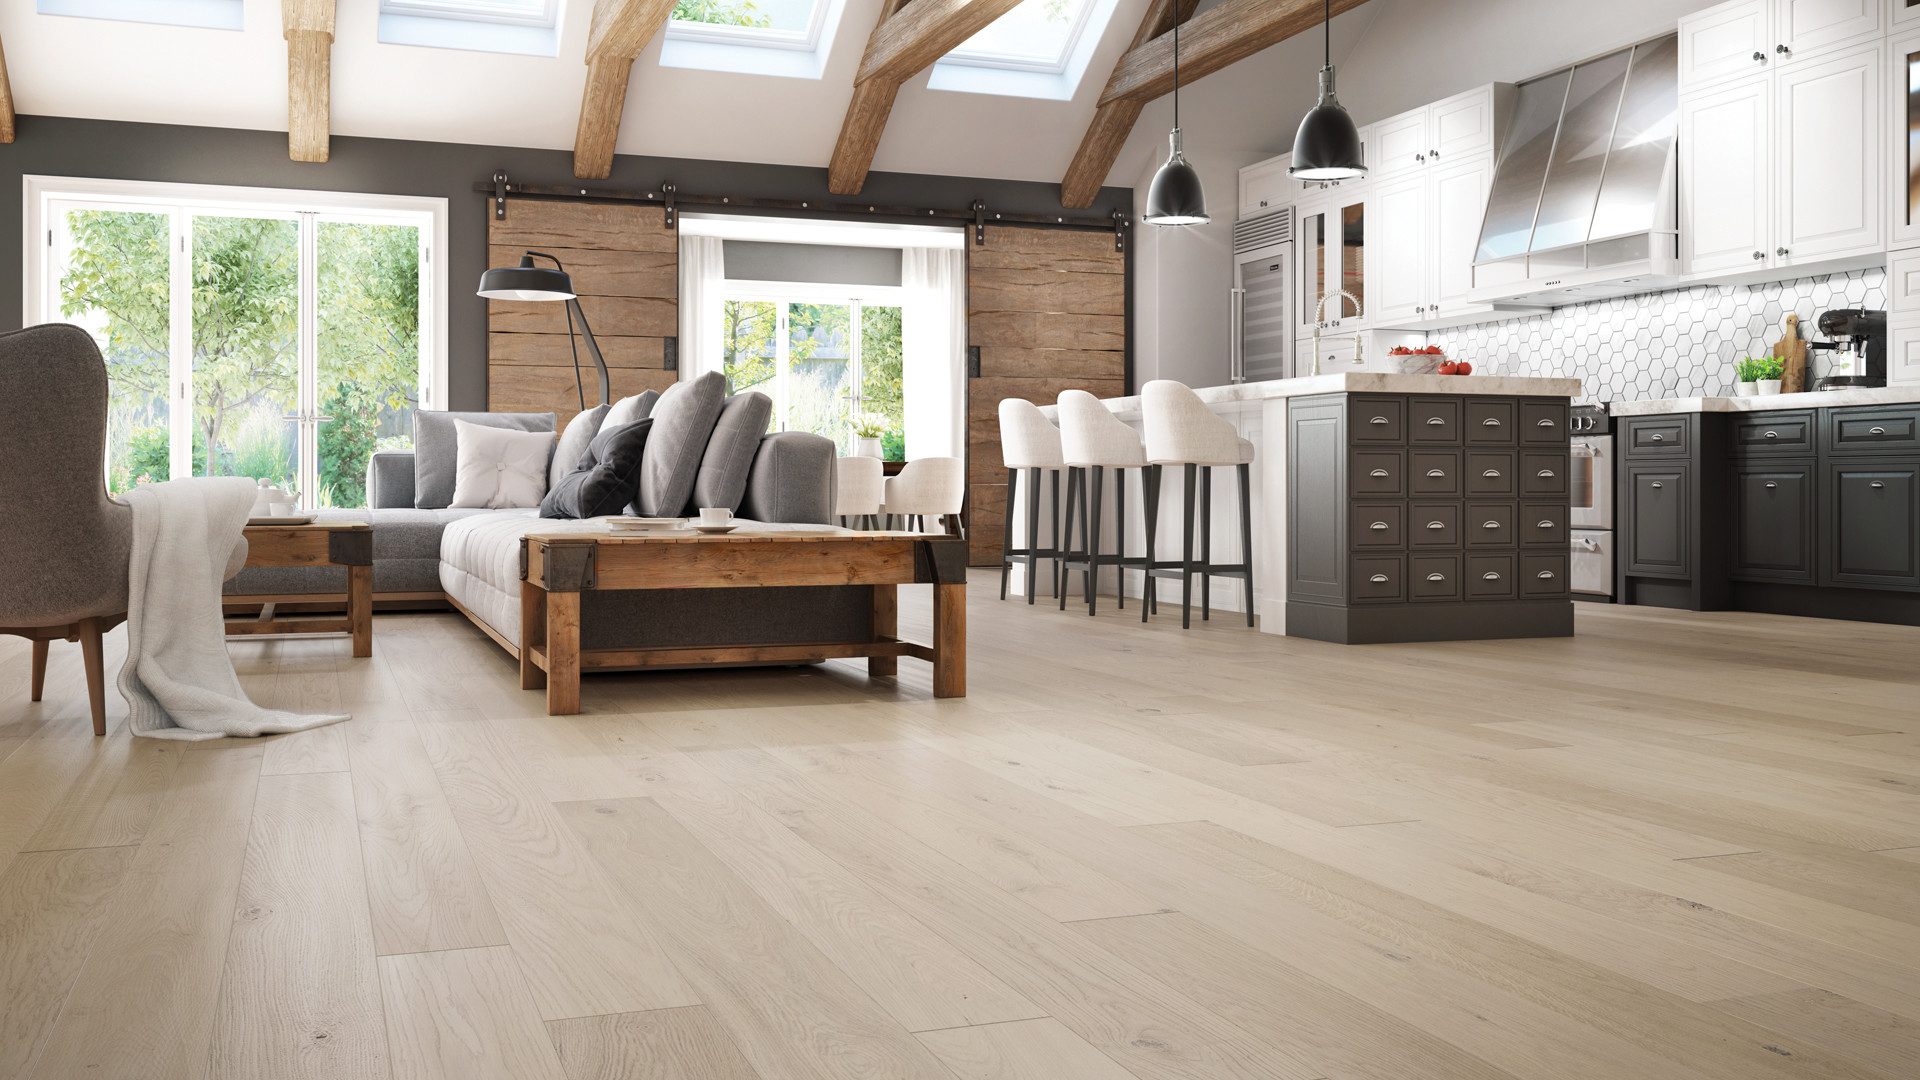 hardwood floor and wall color combinations of 4 latest hardwood flooring trends of 2018 lauzon flooring pertaining to this technology brings your hardwood floors and well being to a new level by improving indoor air quality by up to 85 and decomposing up to 99 6 of